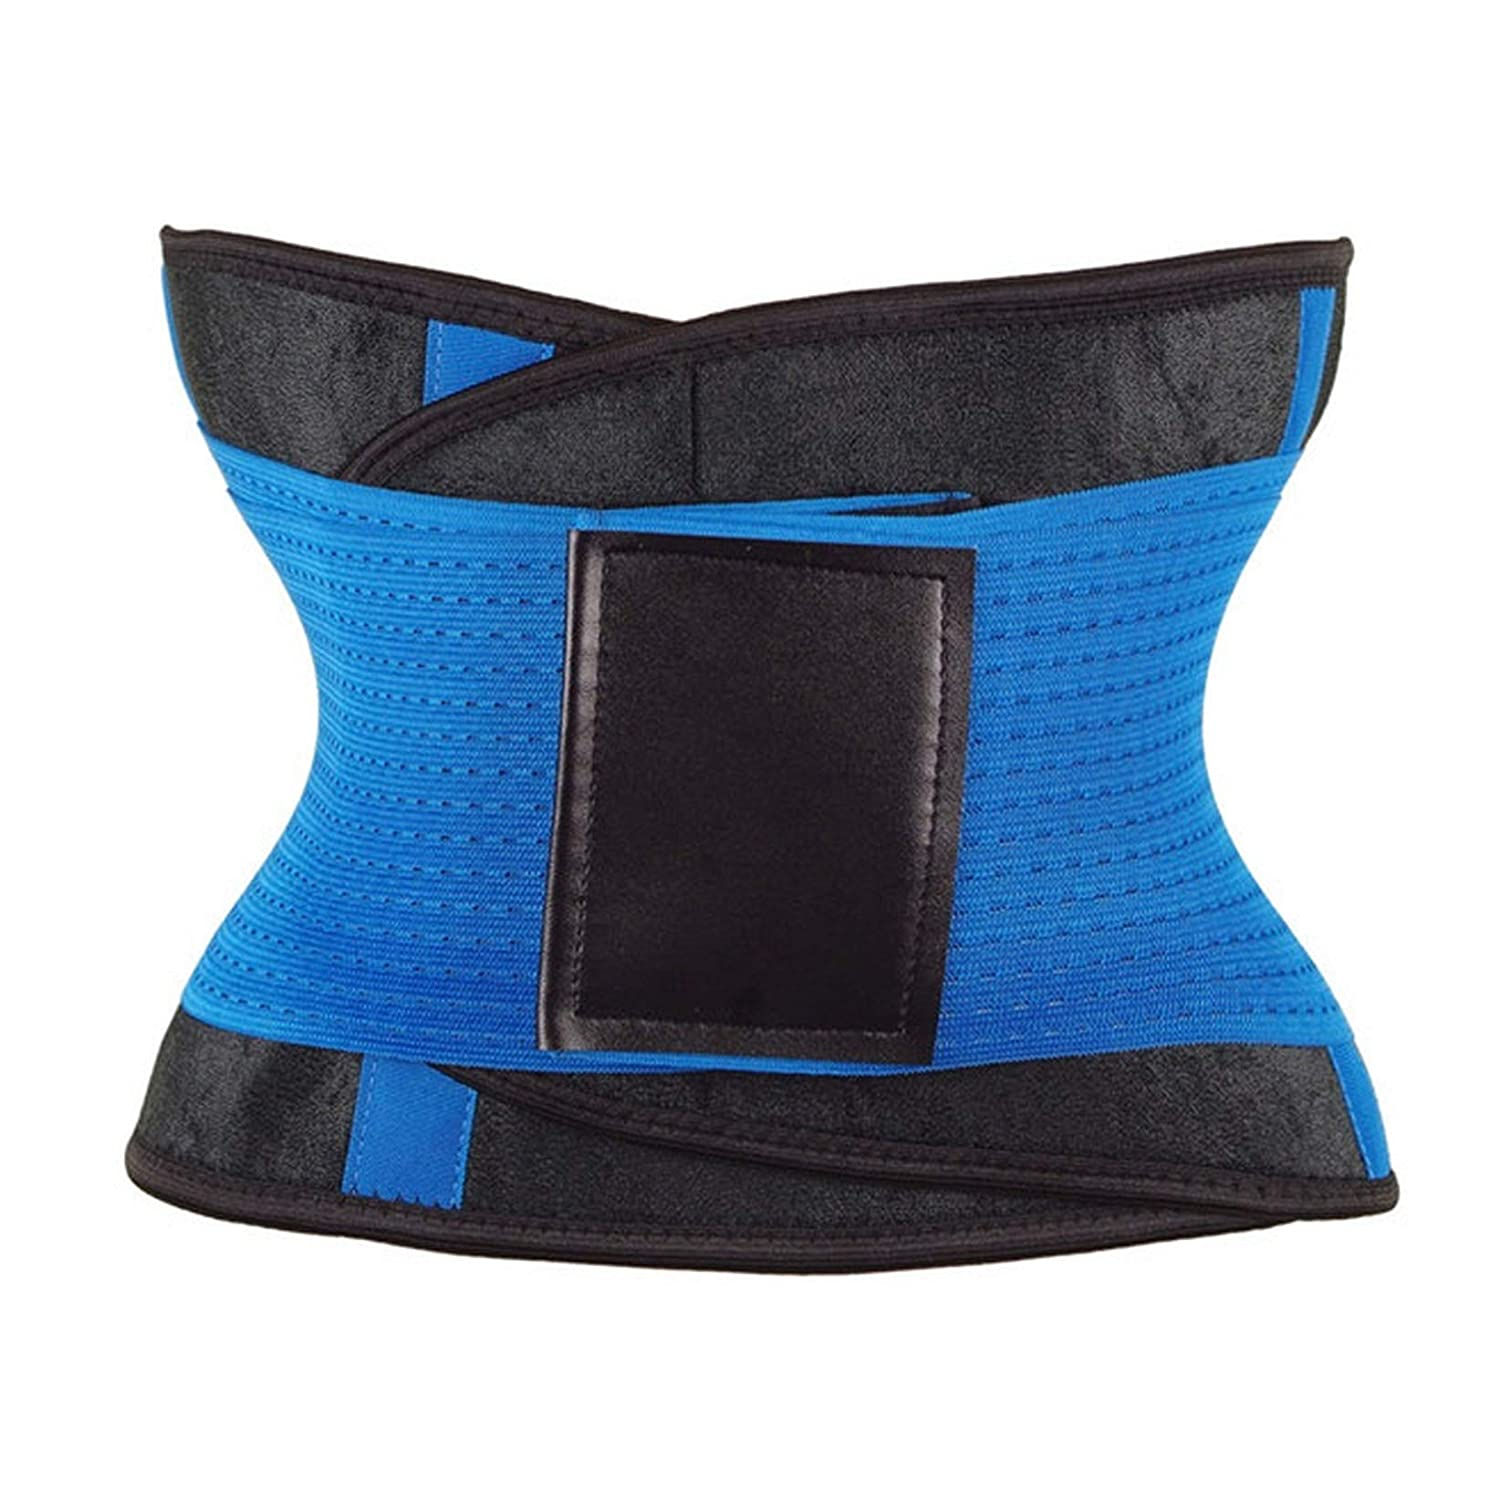 Fortune-God Women Slimming Body Shaper Waist Belt Girdles Control Waist Trainer Corset Shapewear Modeling Strap